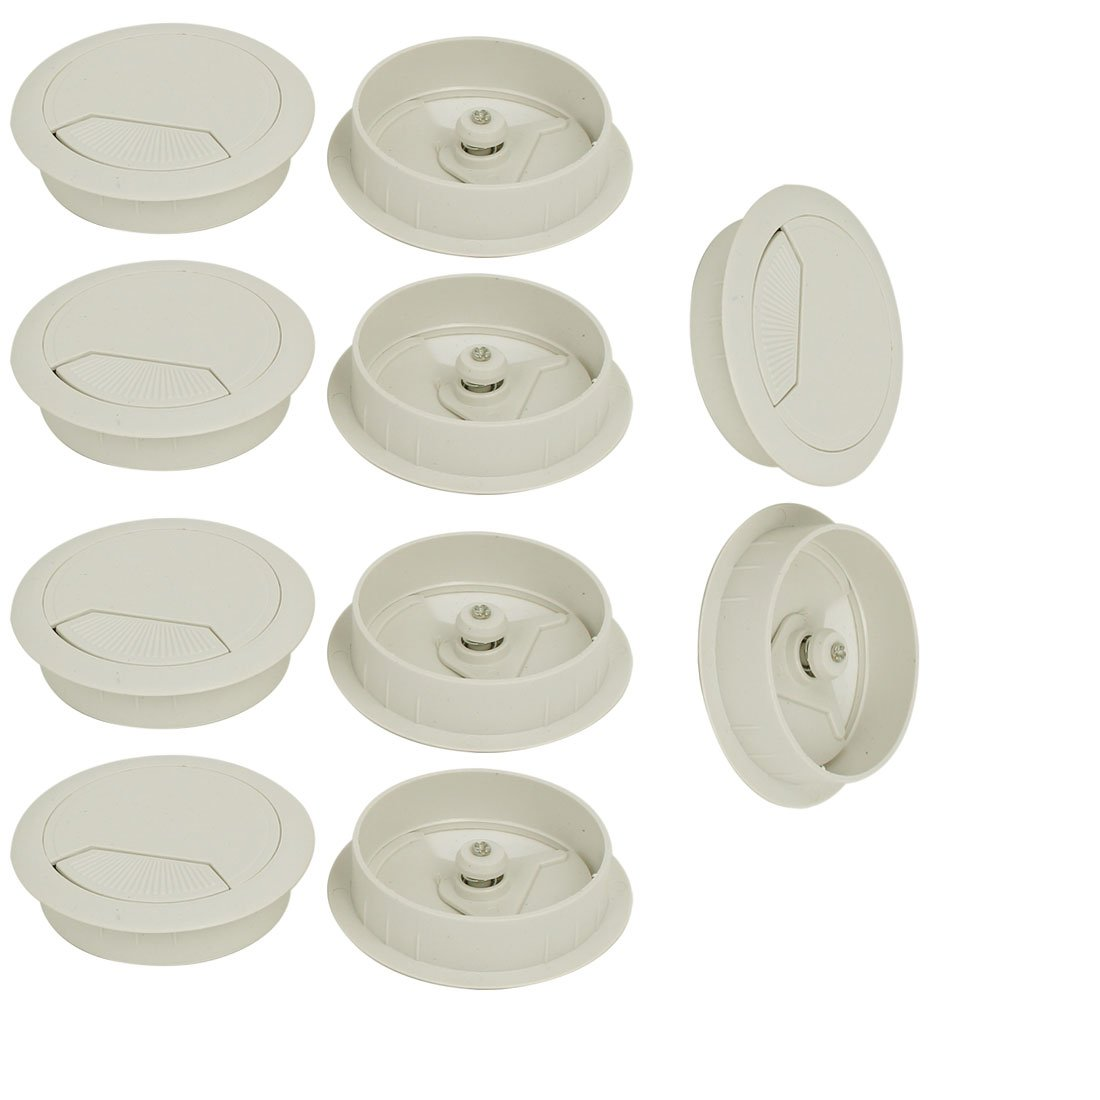 uxcell Computer Desk 60mm Dia Plastic Adjustable Grommet Cable Hole Cover White 10pcs